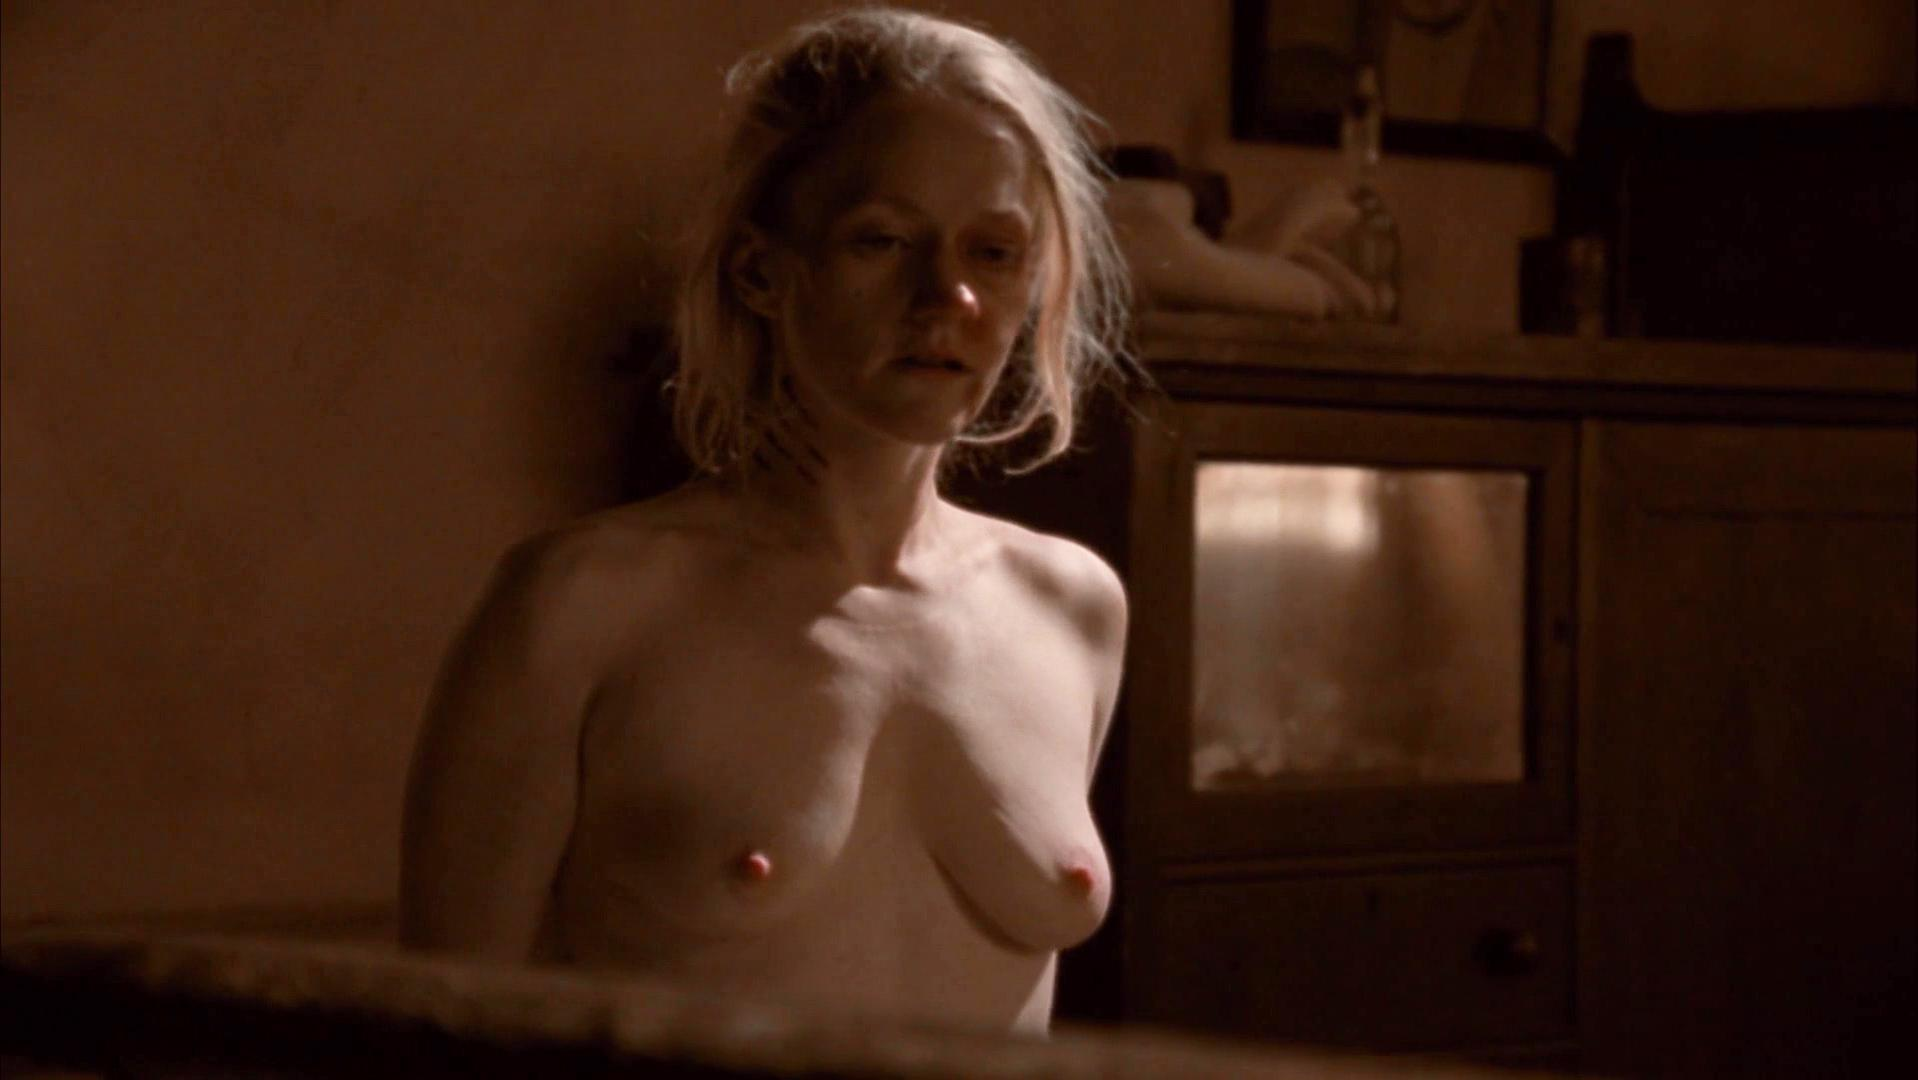 Paula malcomson nude pictures consider, that